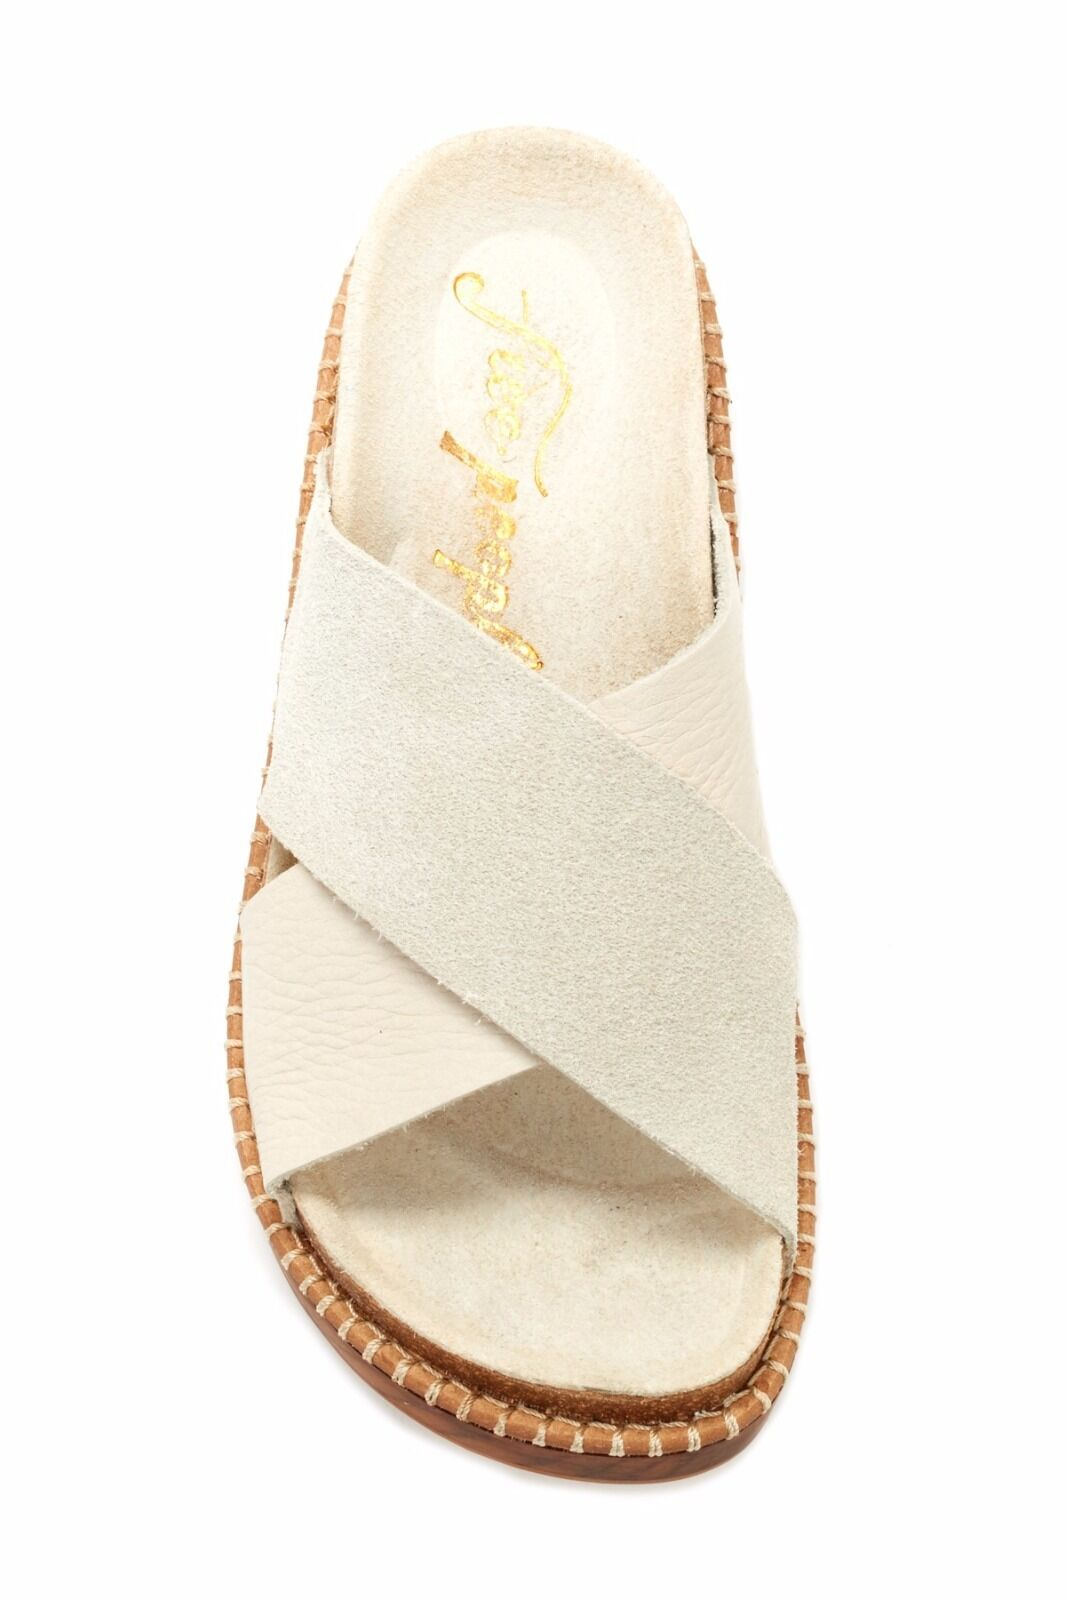 Free People Wouomo Brickell Brickell Brickell Brickel Footbed Sandal Suede Leather Sz 36 US 6 834c7f